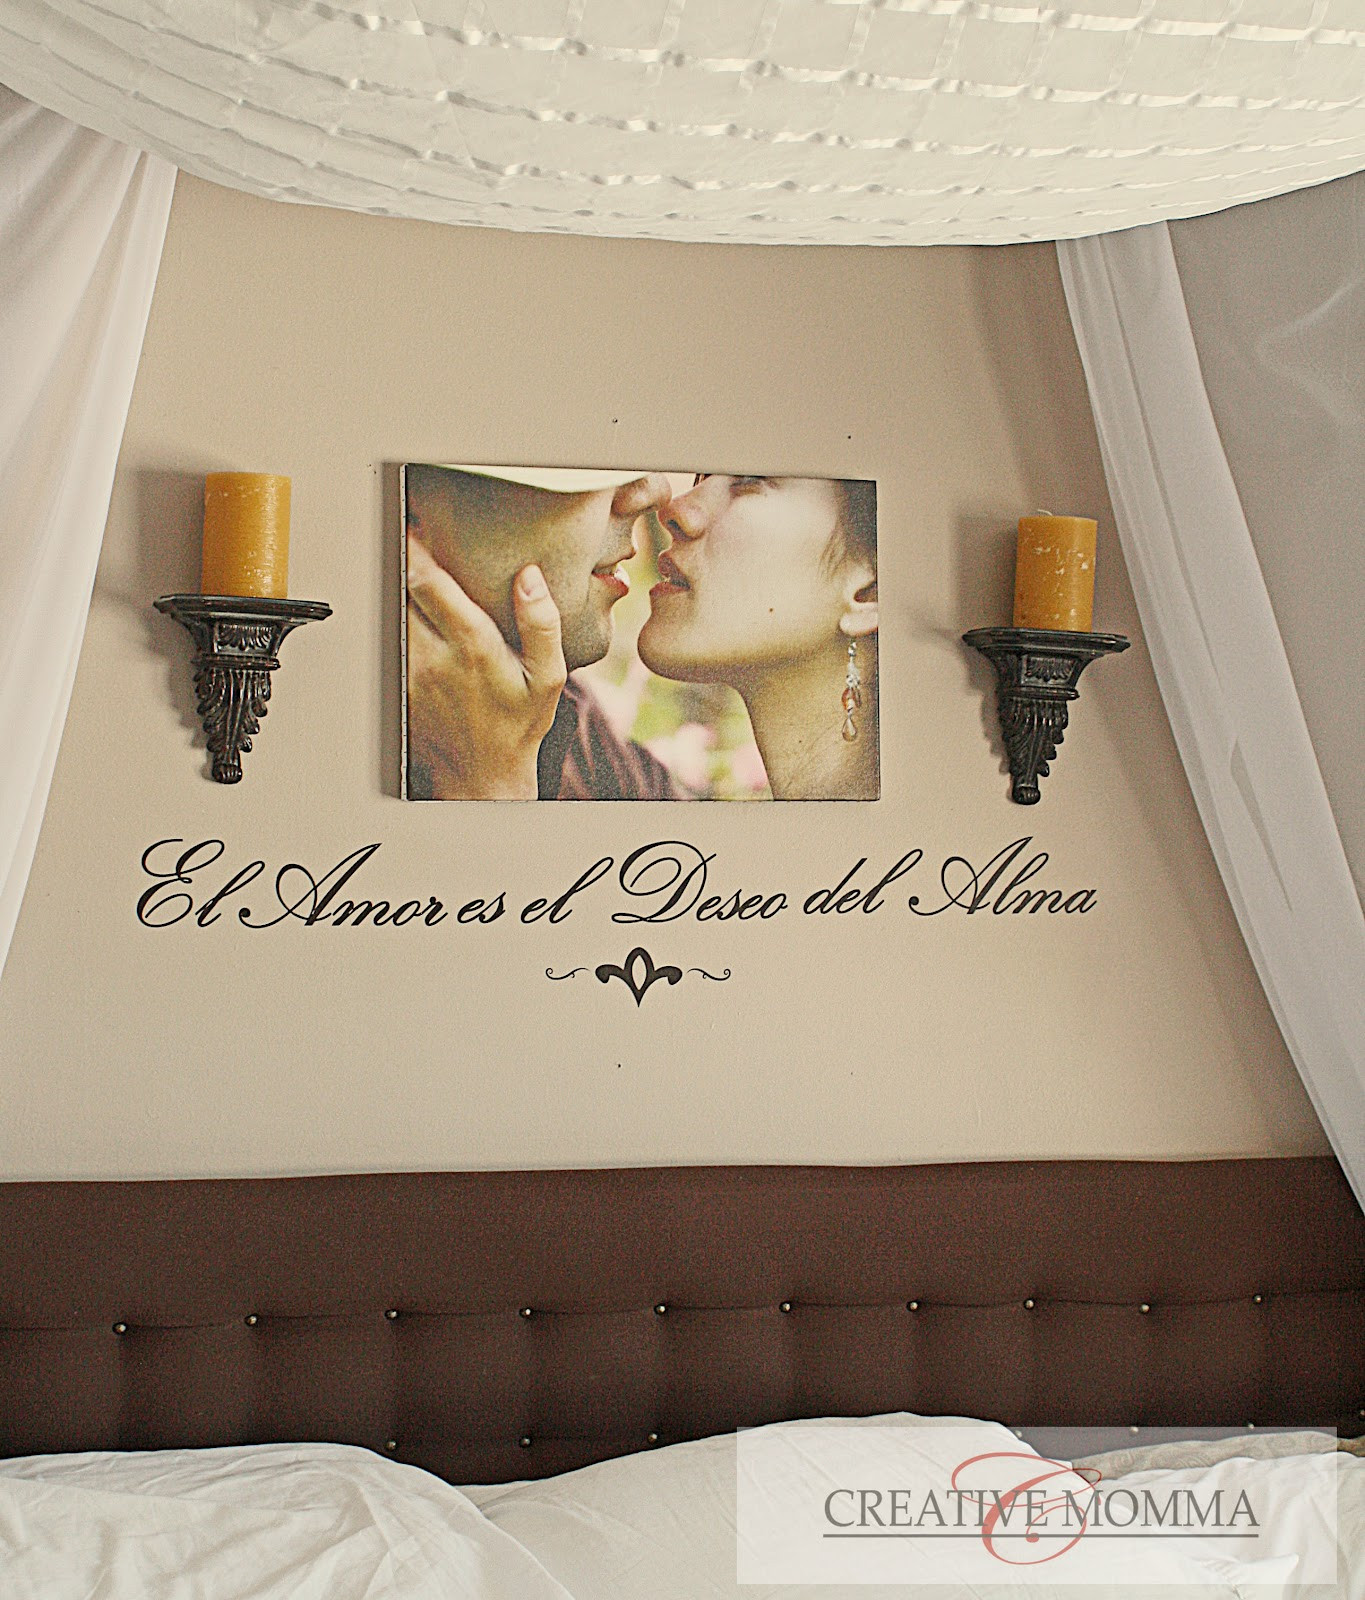 Best ideas about Wall Decor For Bedroom . Save or Pin Creative Mommas Purple Bedroom Wall Now.